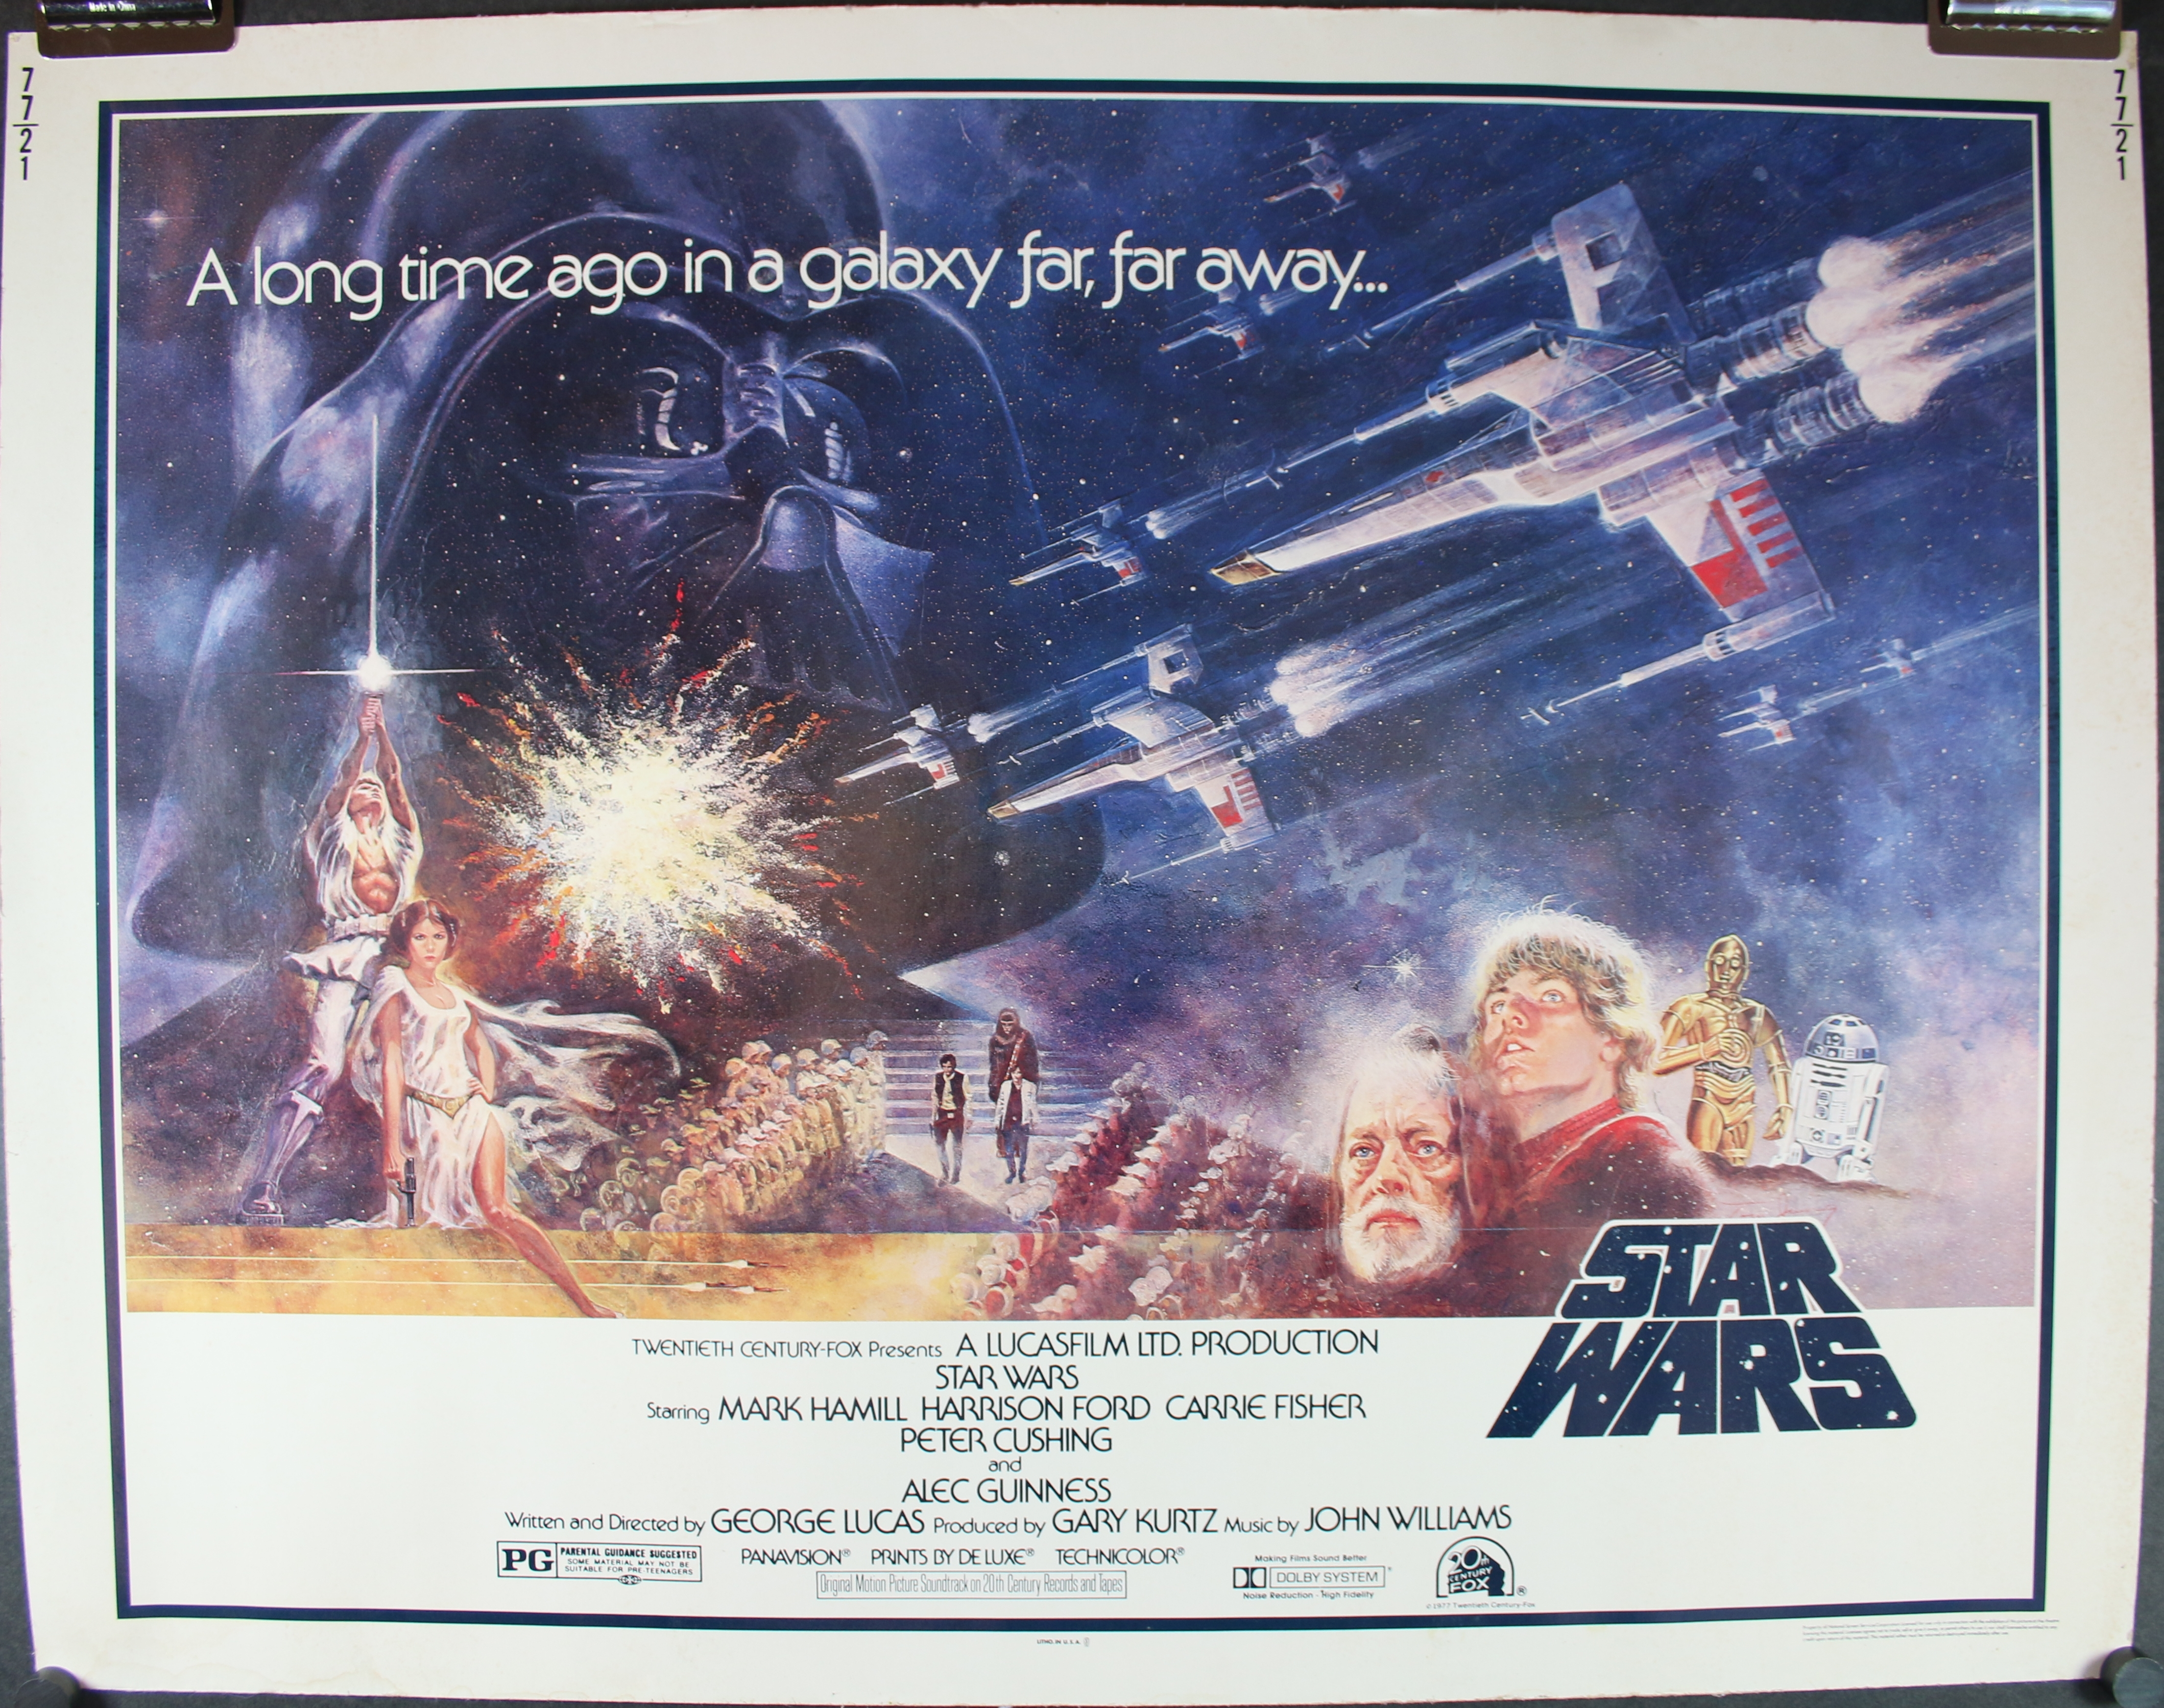 Star wars new hope movie poster